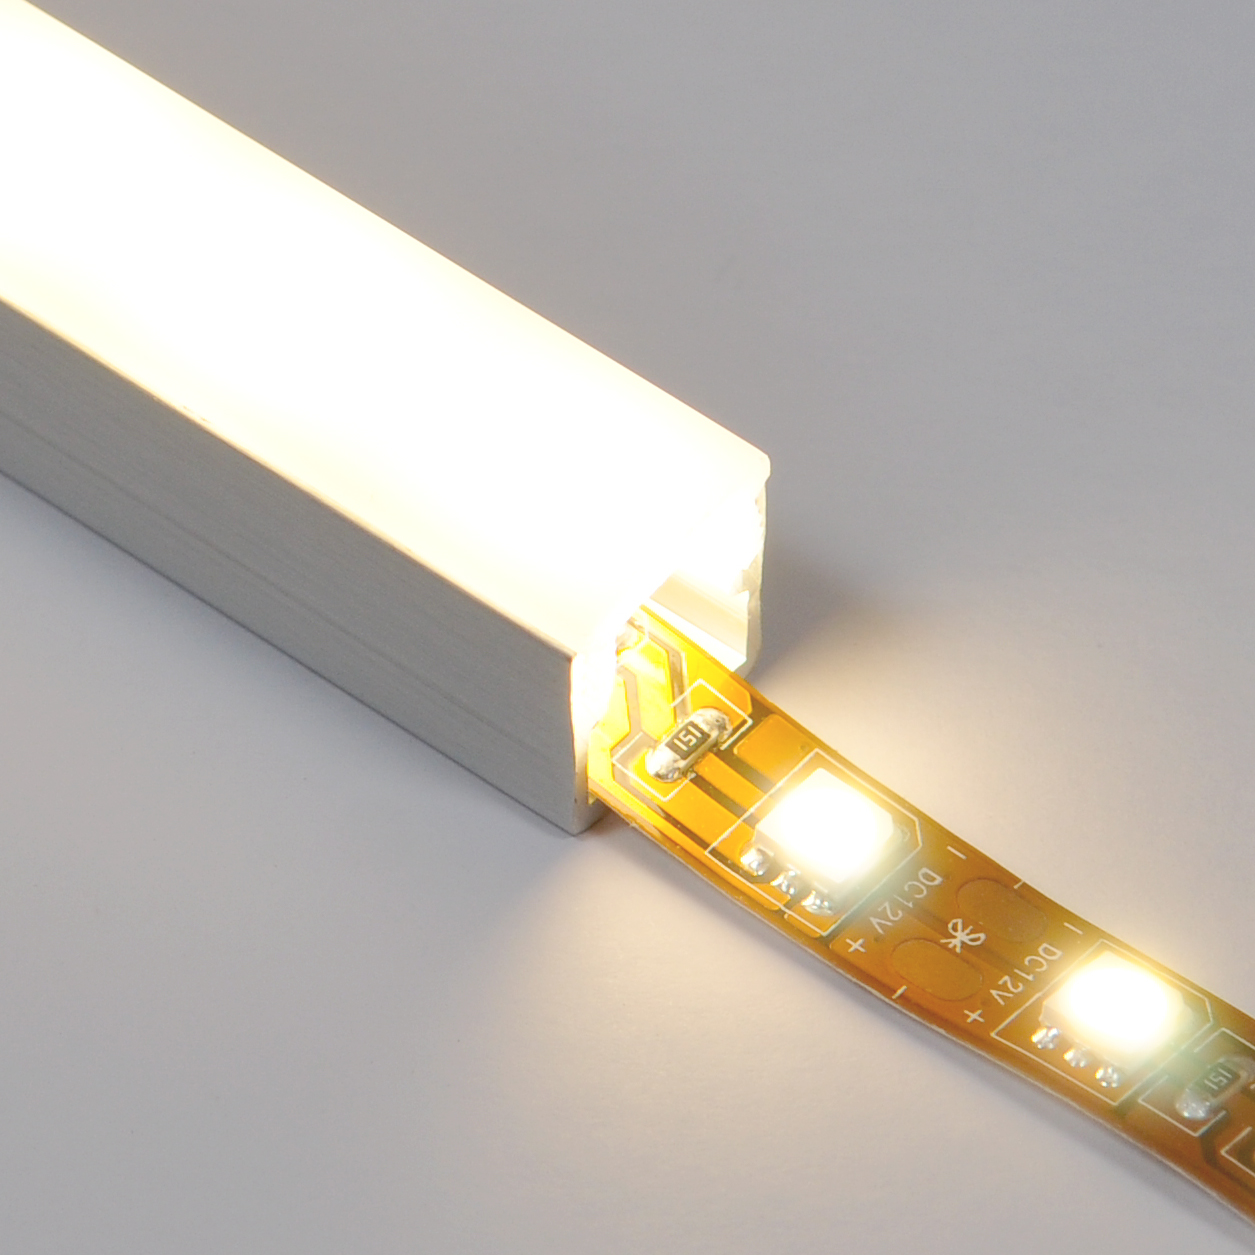 environmentallights com adds klus aluminum channel line for led